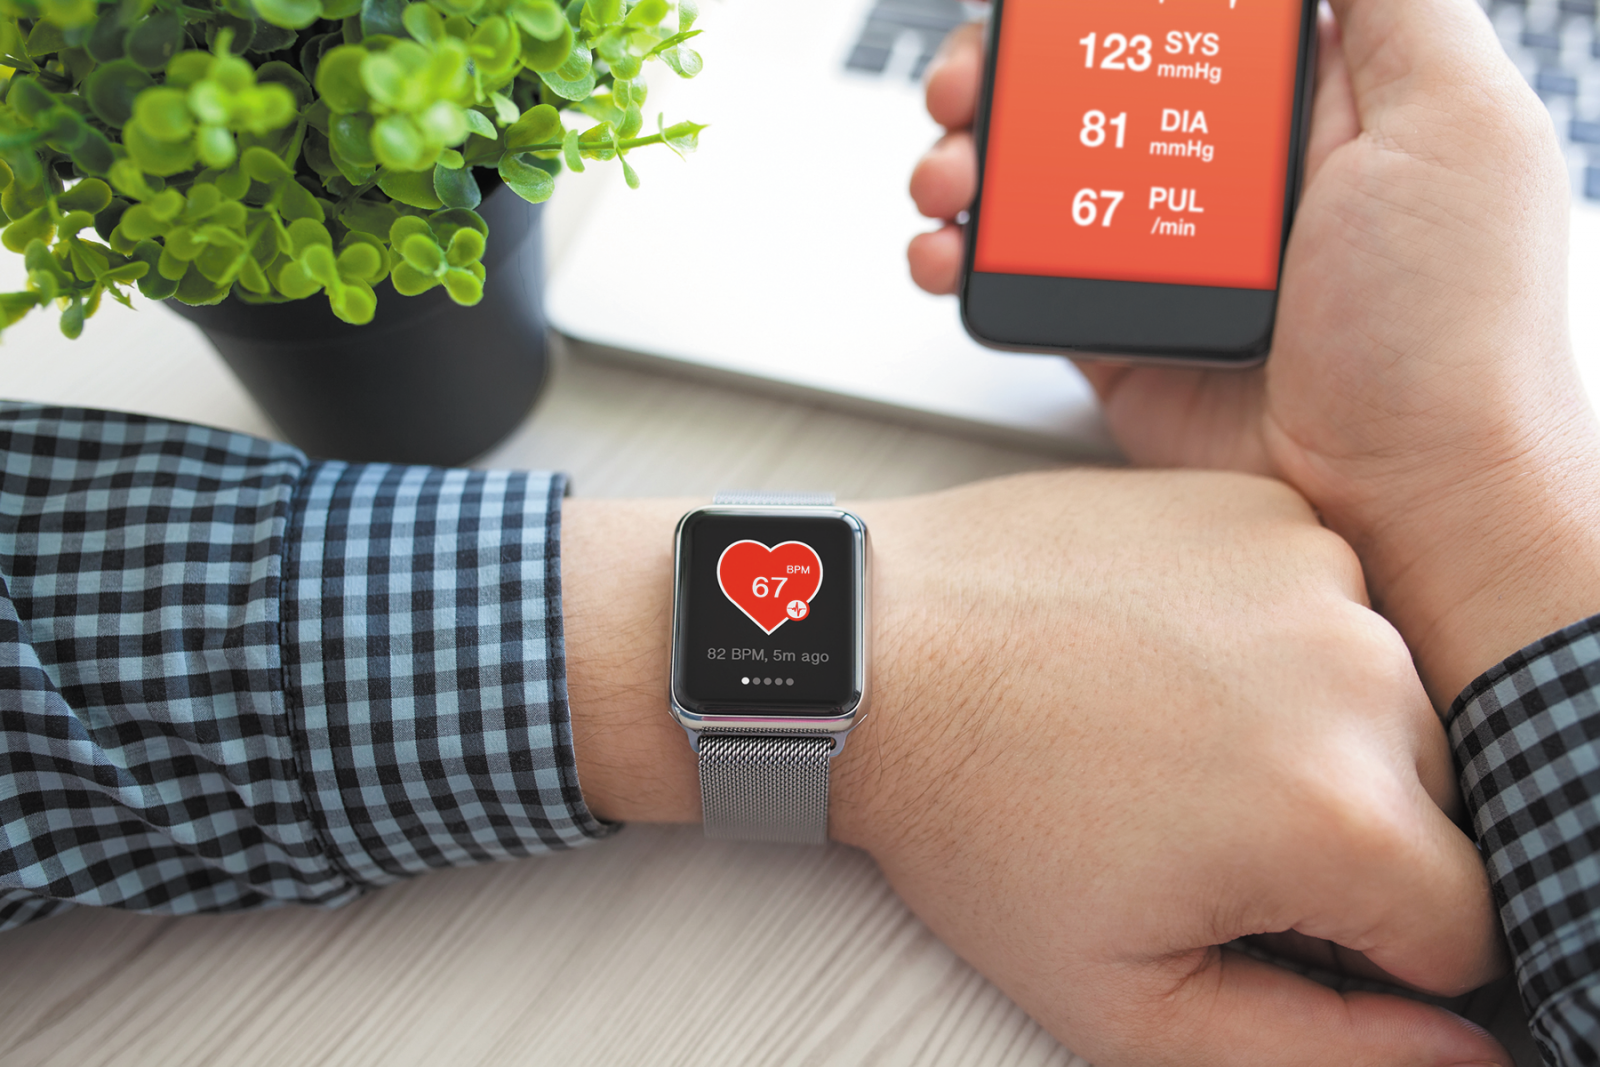 monitoring heart rhythm with smartphone